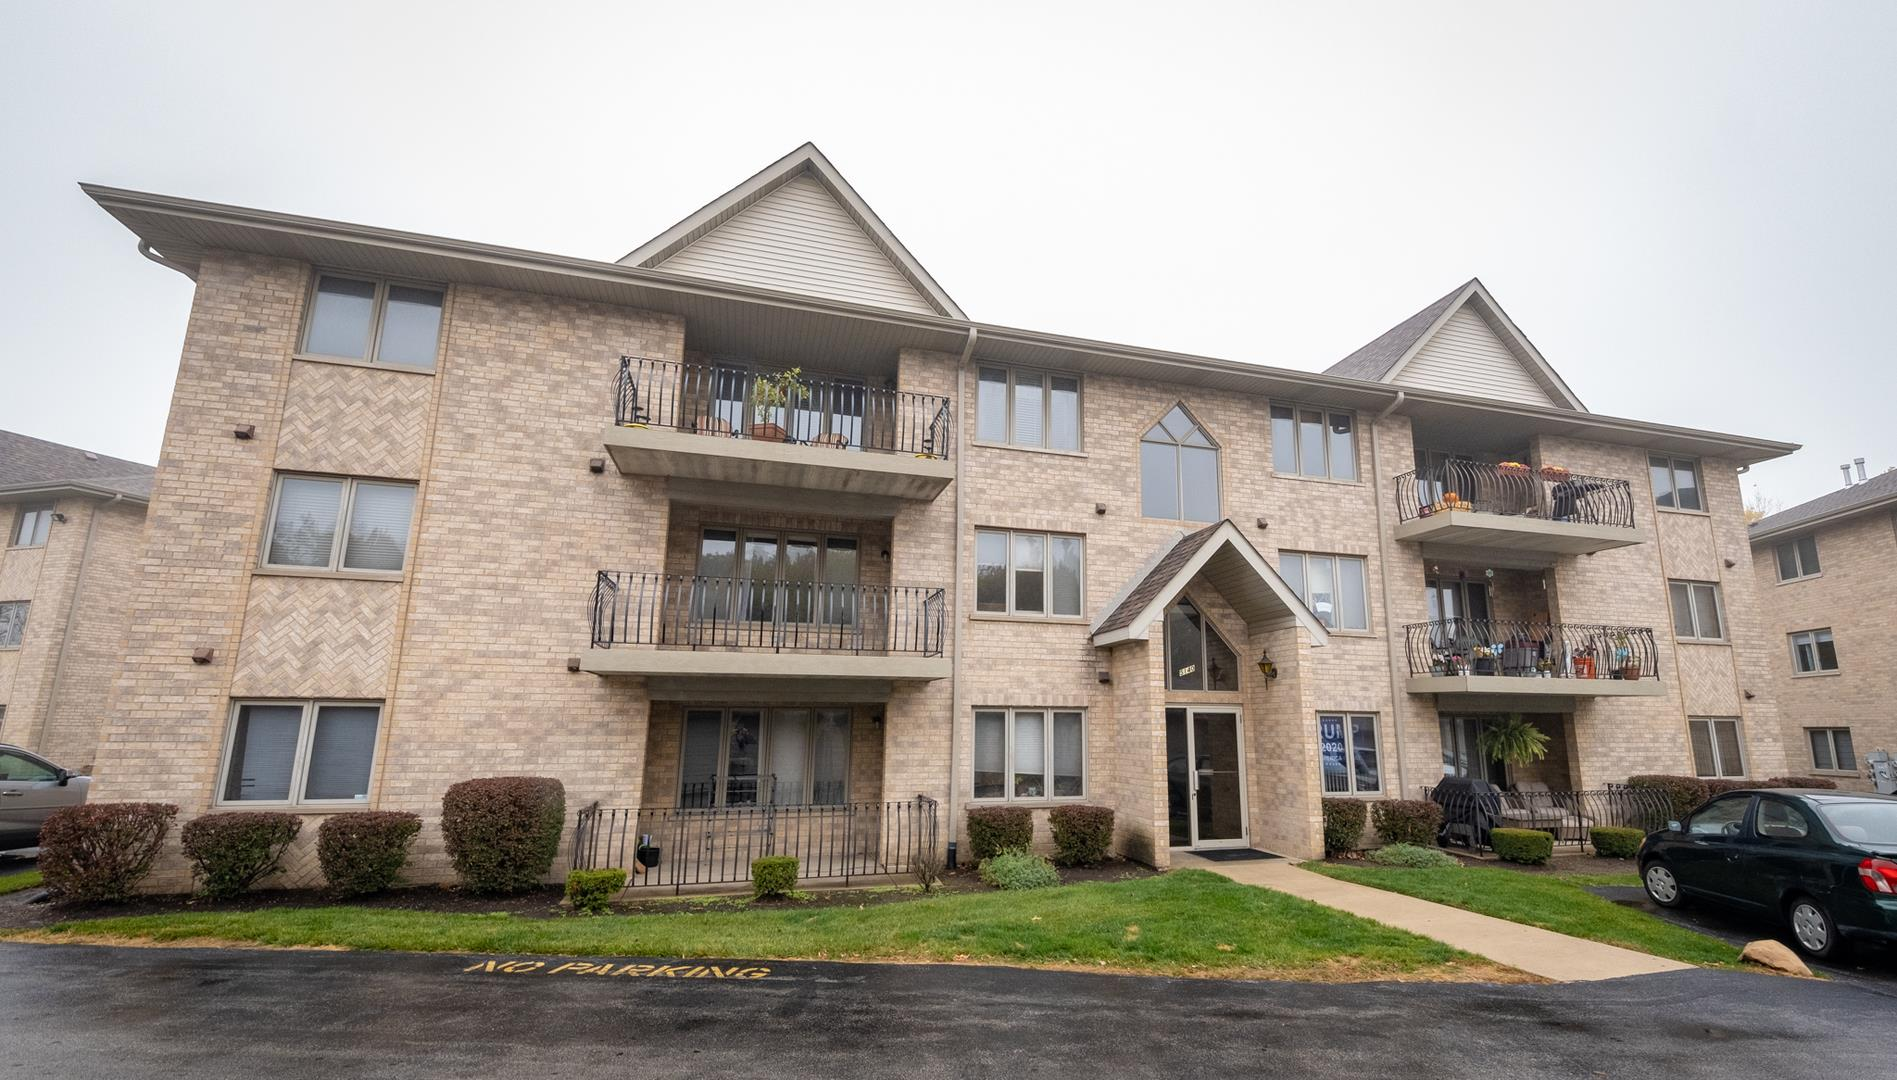 5140 SHADOW CREEK Drive #10, Oak Forest, IL 60452 - #: 10914716